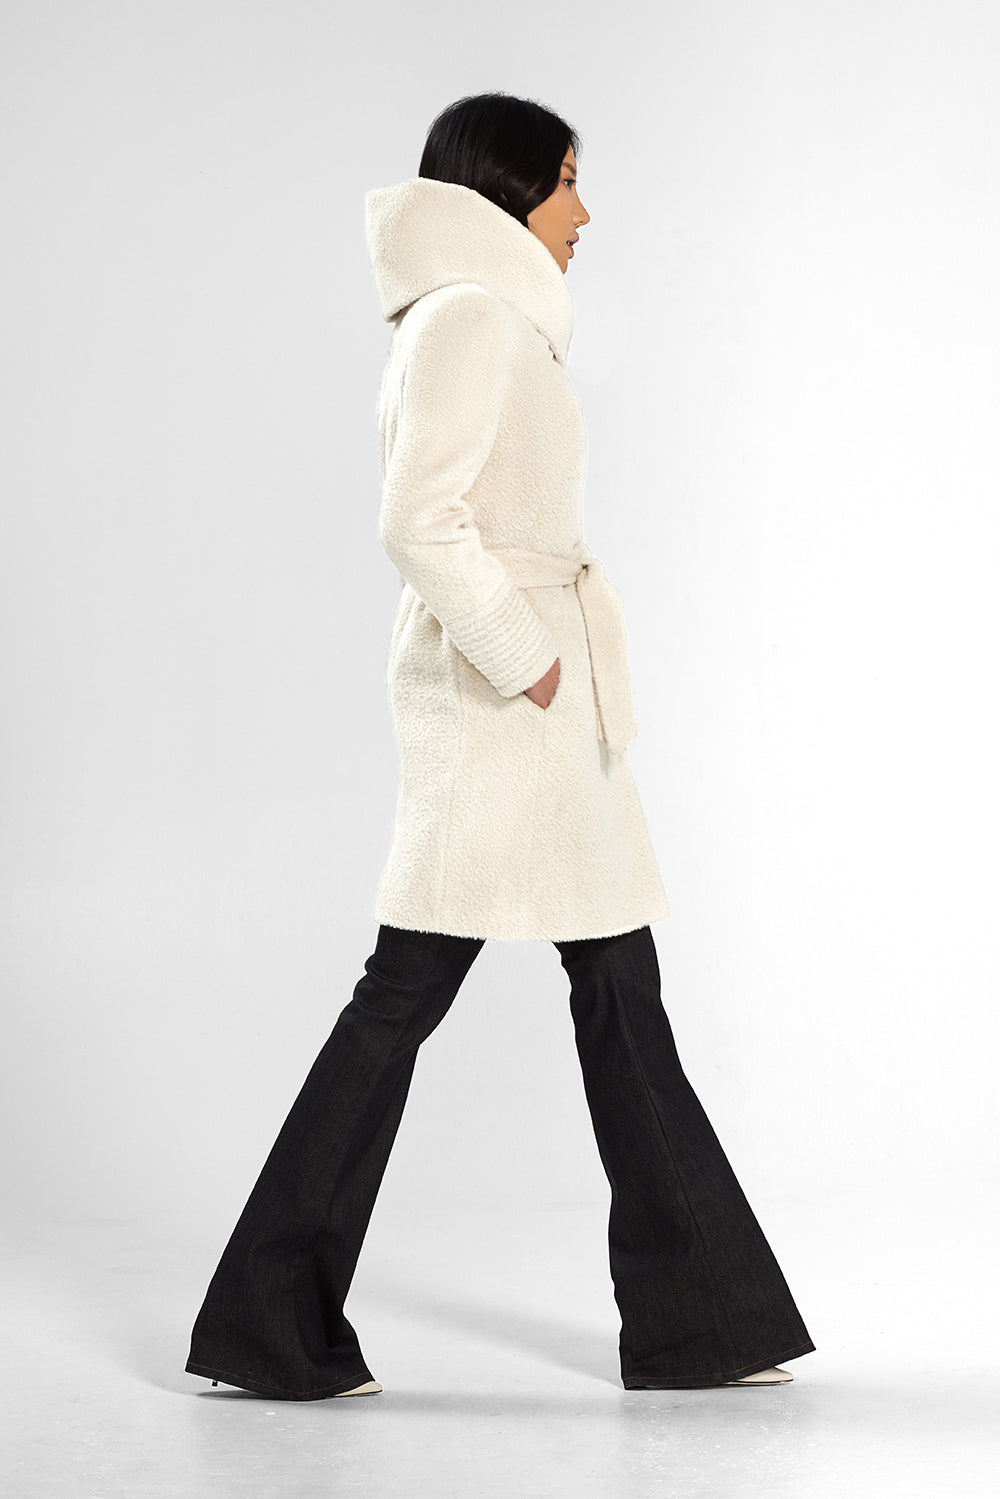 Sentaler Bouclé Alpaca Mid Length Hooded Wrap Coat featured in Bouclé Alpaca and available in Ivory. Seen from side.